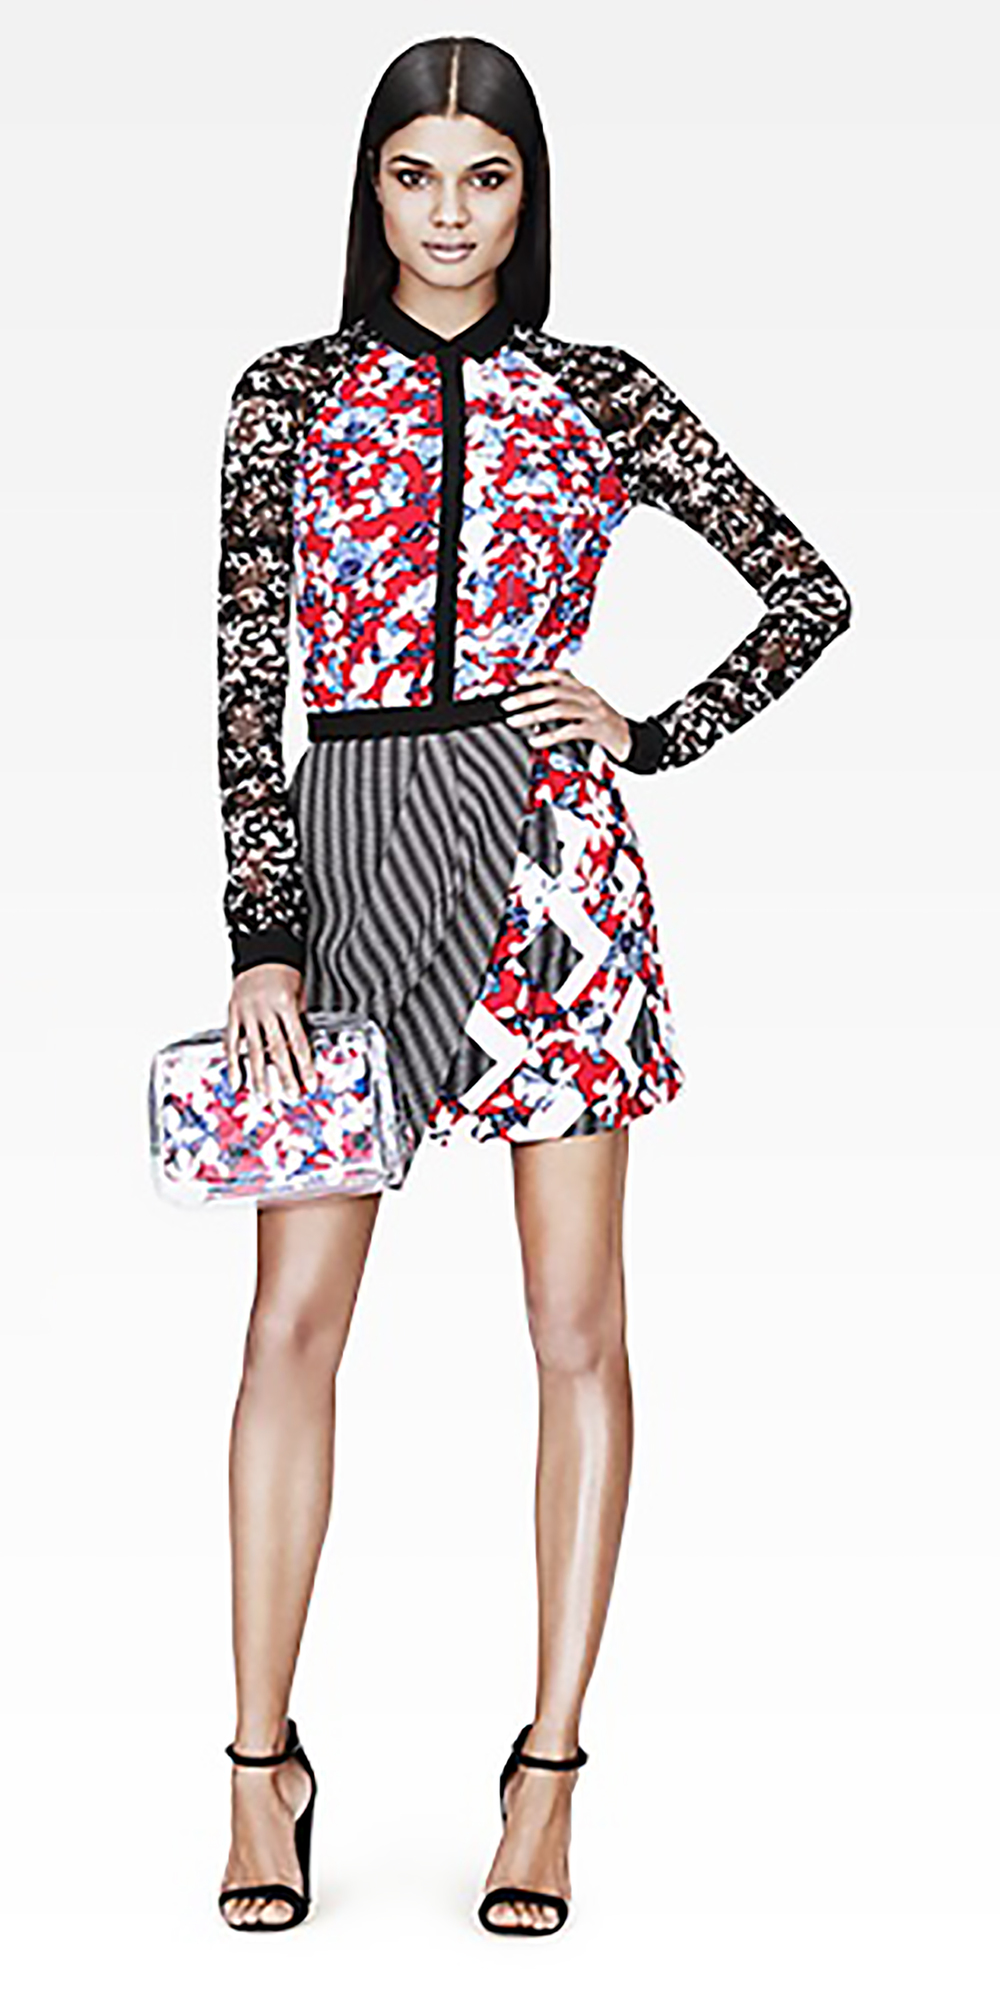 target.com peter pilotto blouse in red floral ptint 1500.jpg